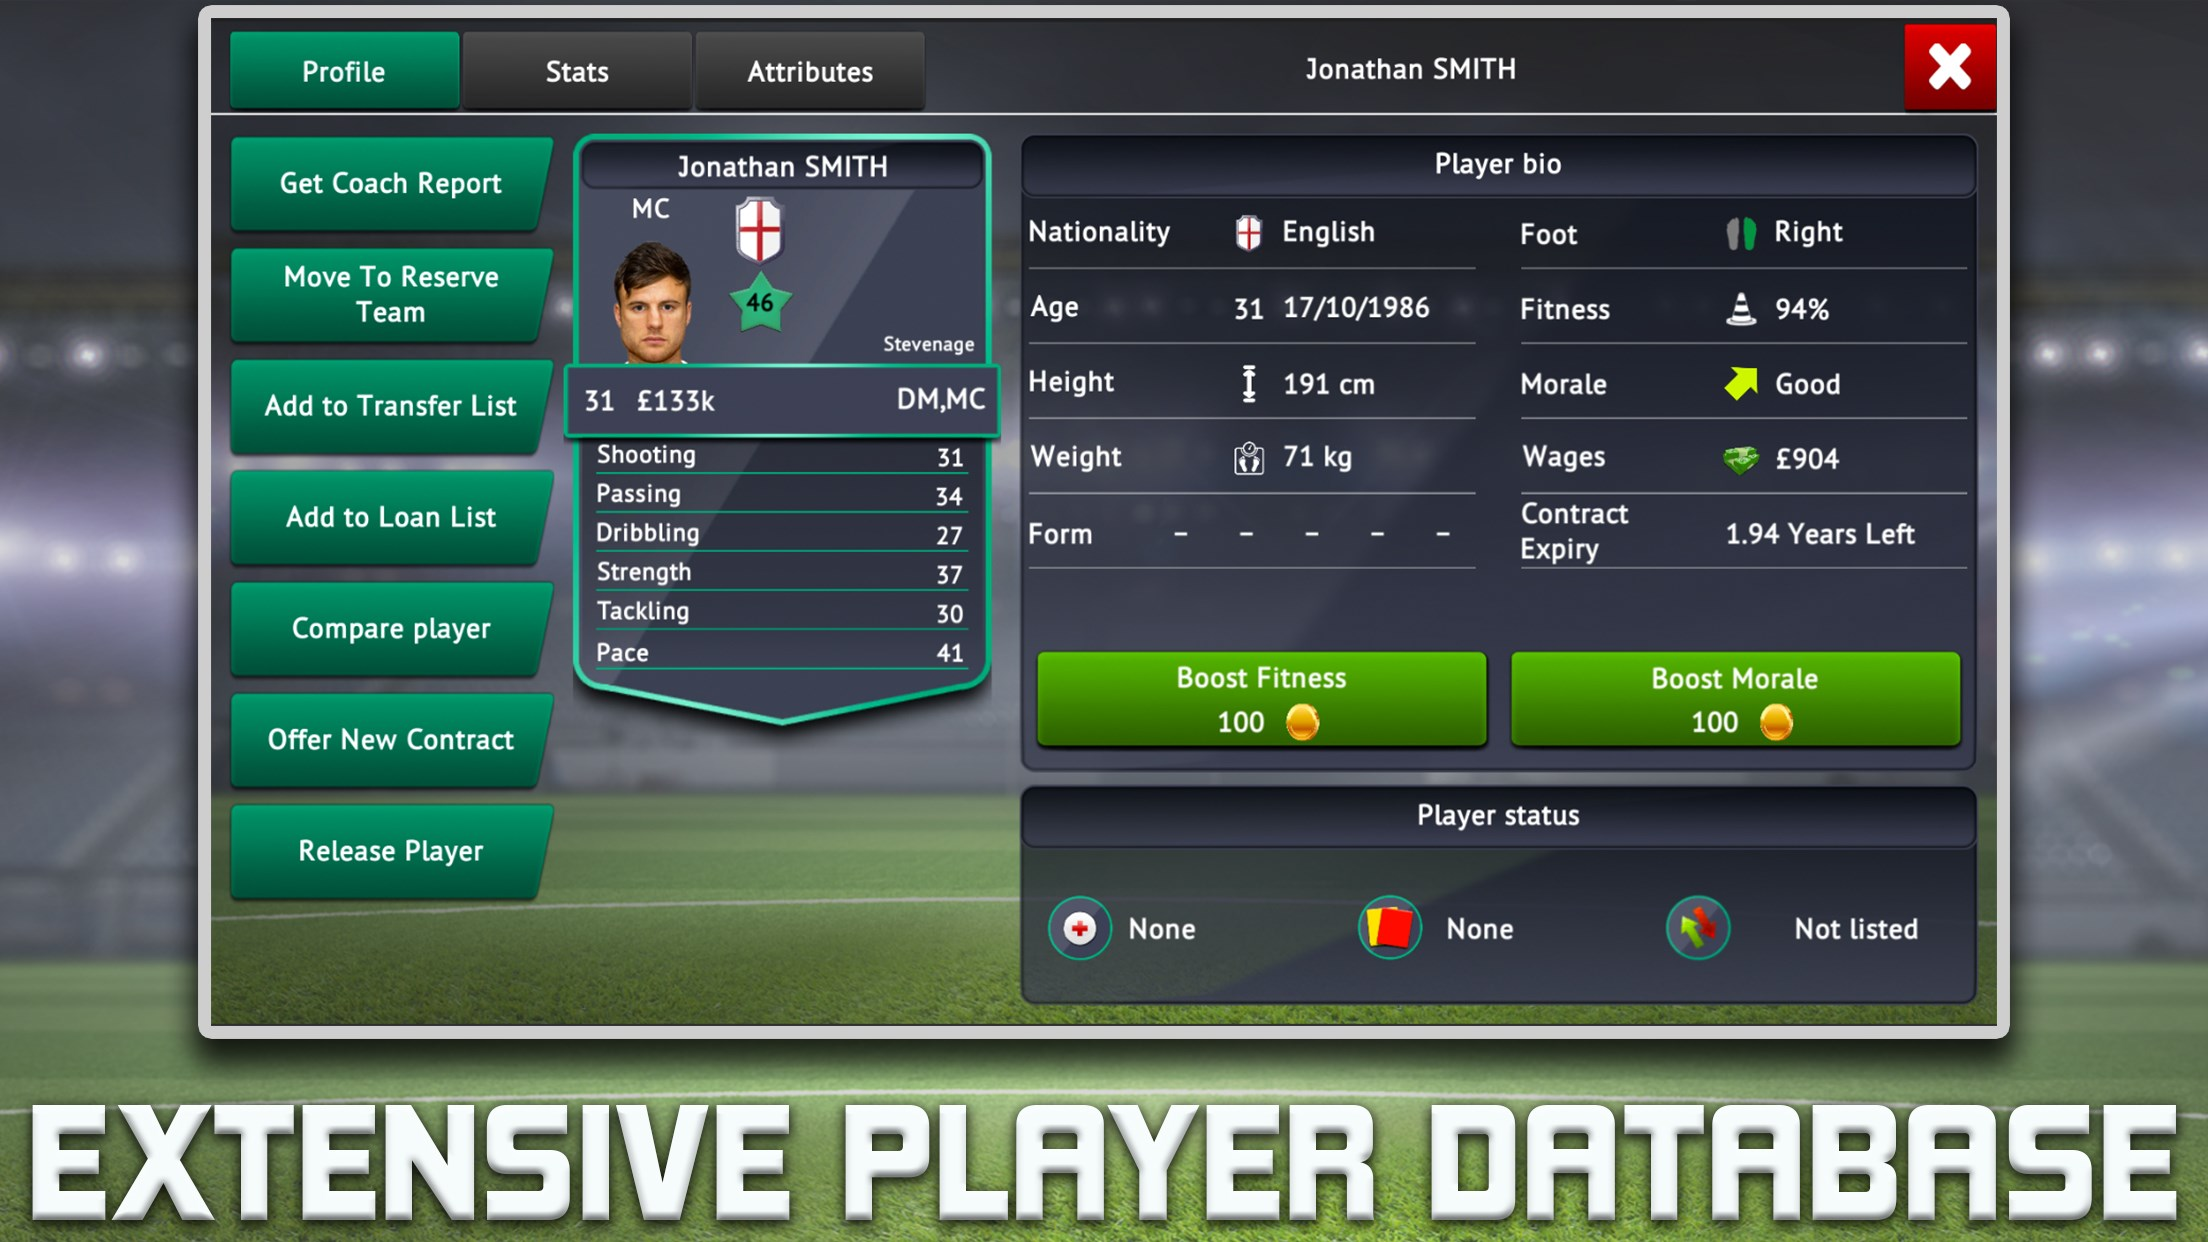 Soccer Manager 2019 Extensive Player Database